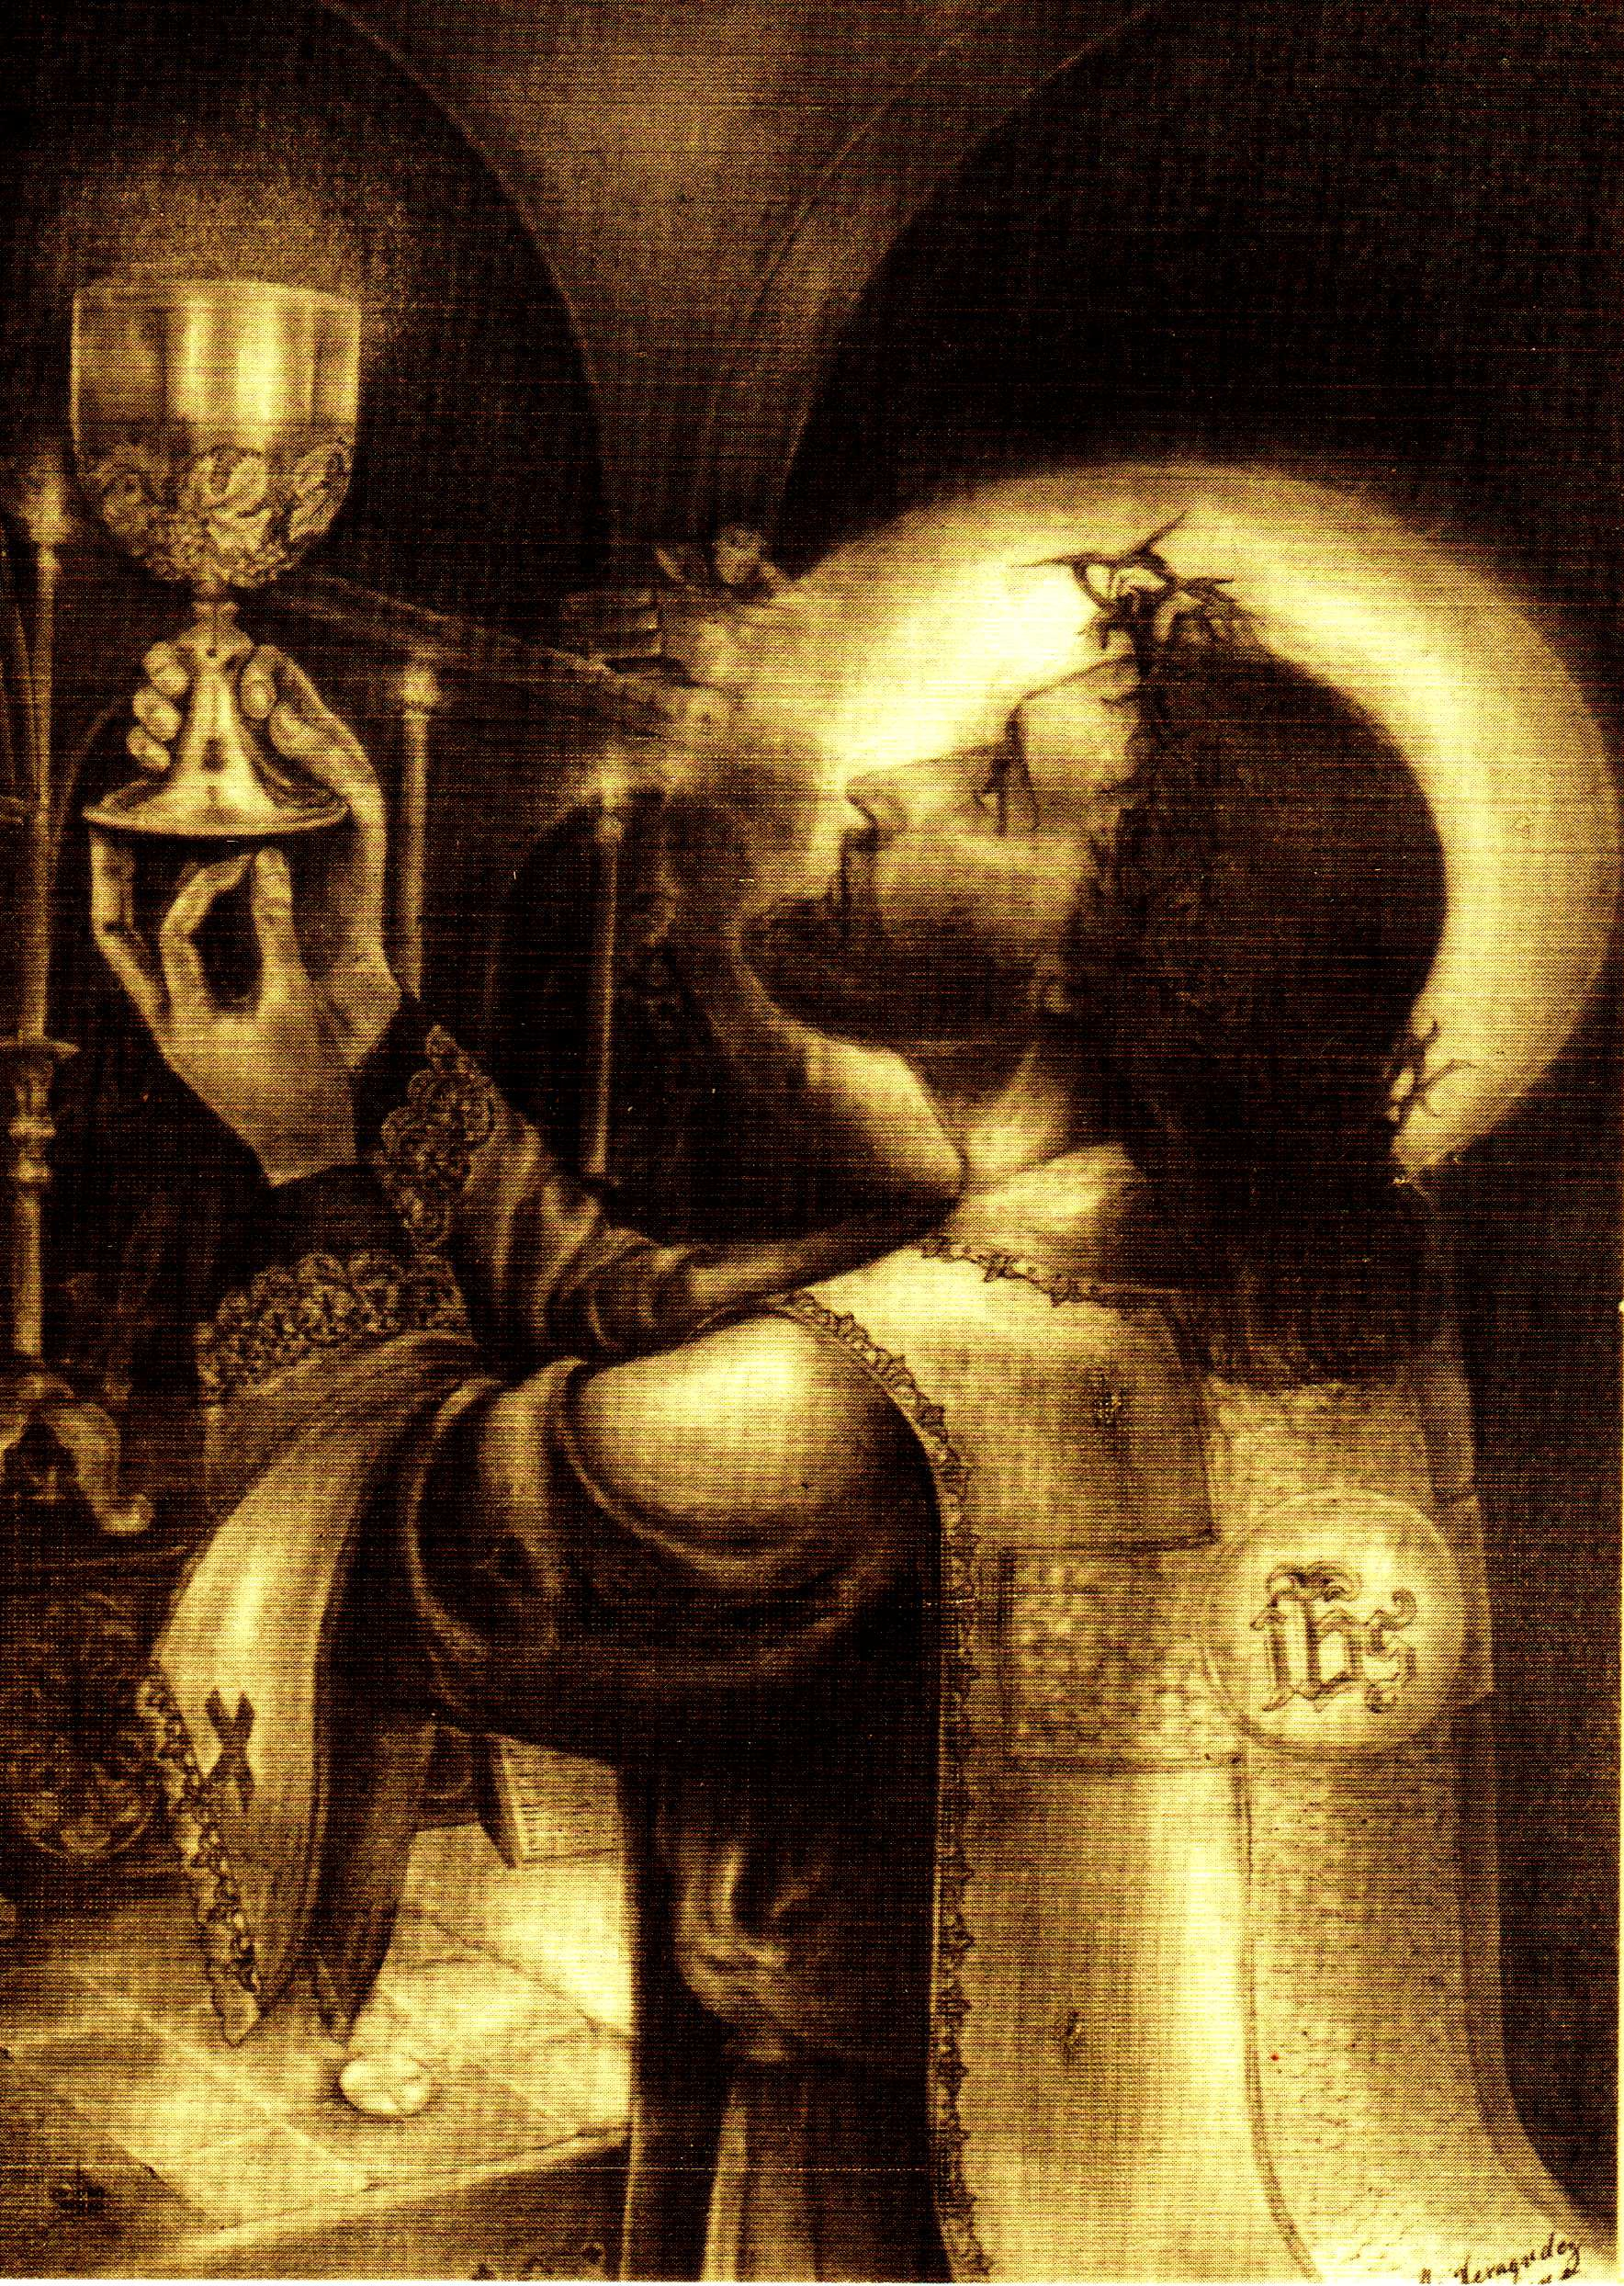 HOLY MASS AND JESUS AS PRIEST